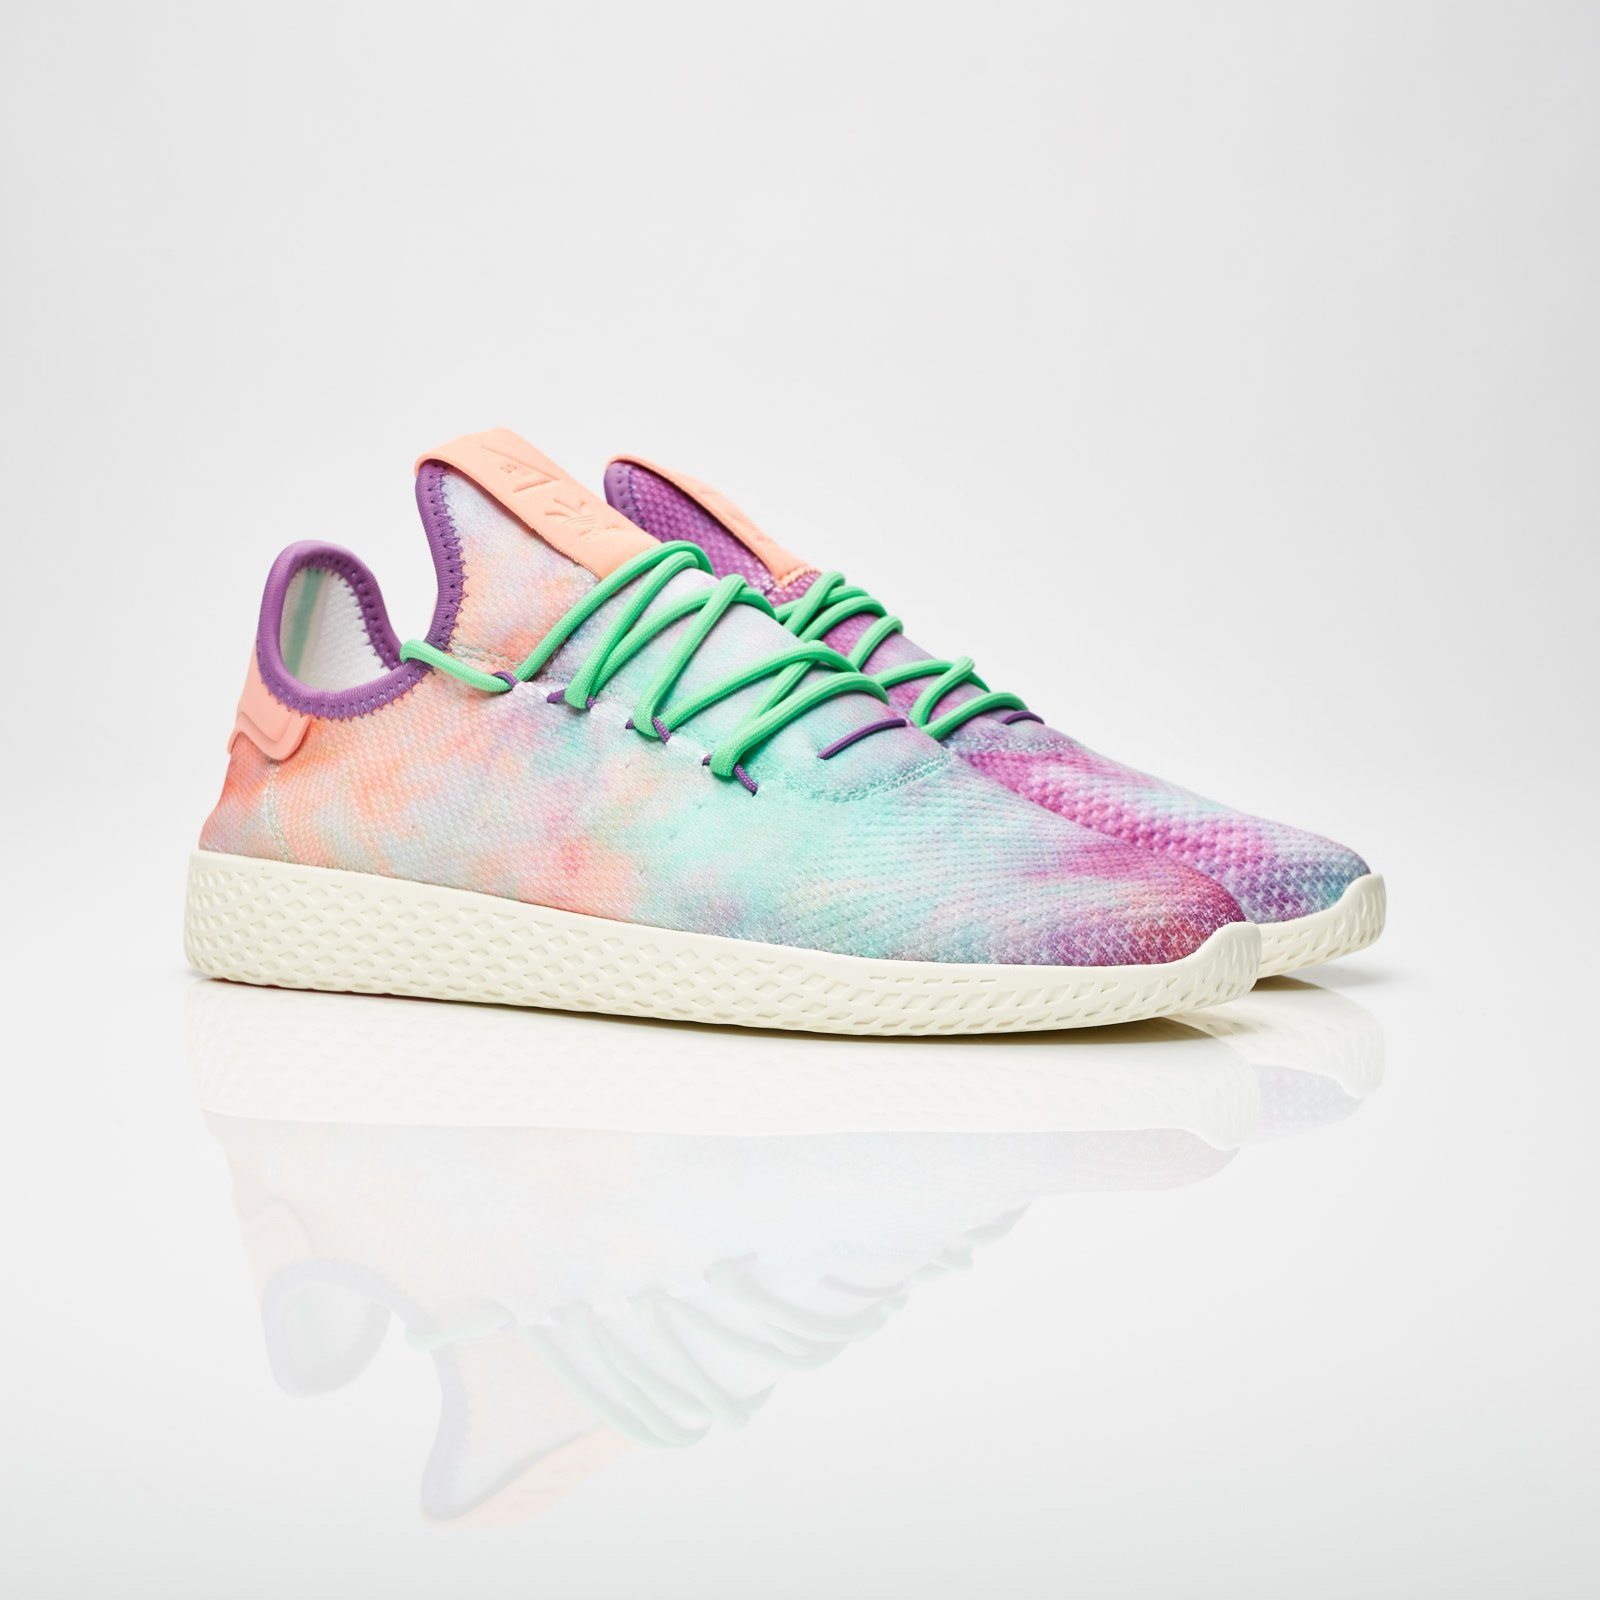 adidas Pharrell Williams HU Holi Tennis Hu MC - Ac7366 ... d5a709aca